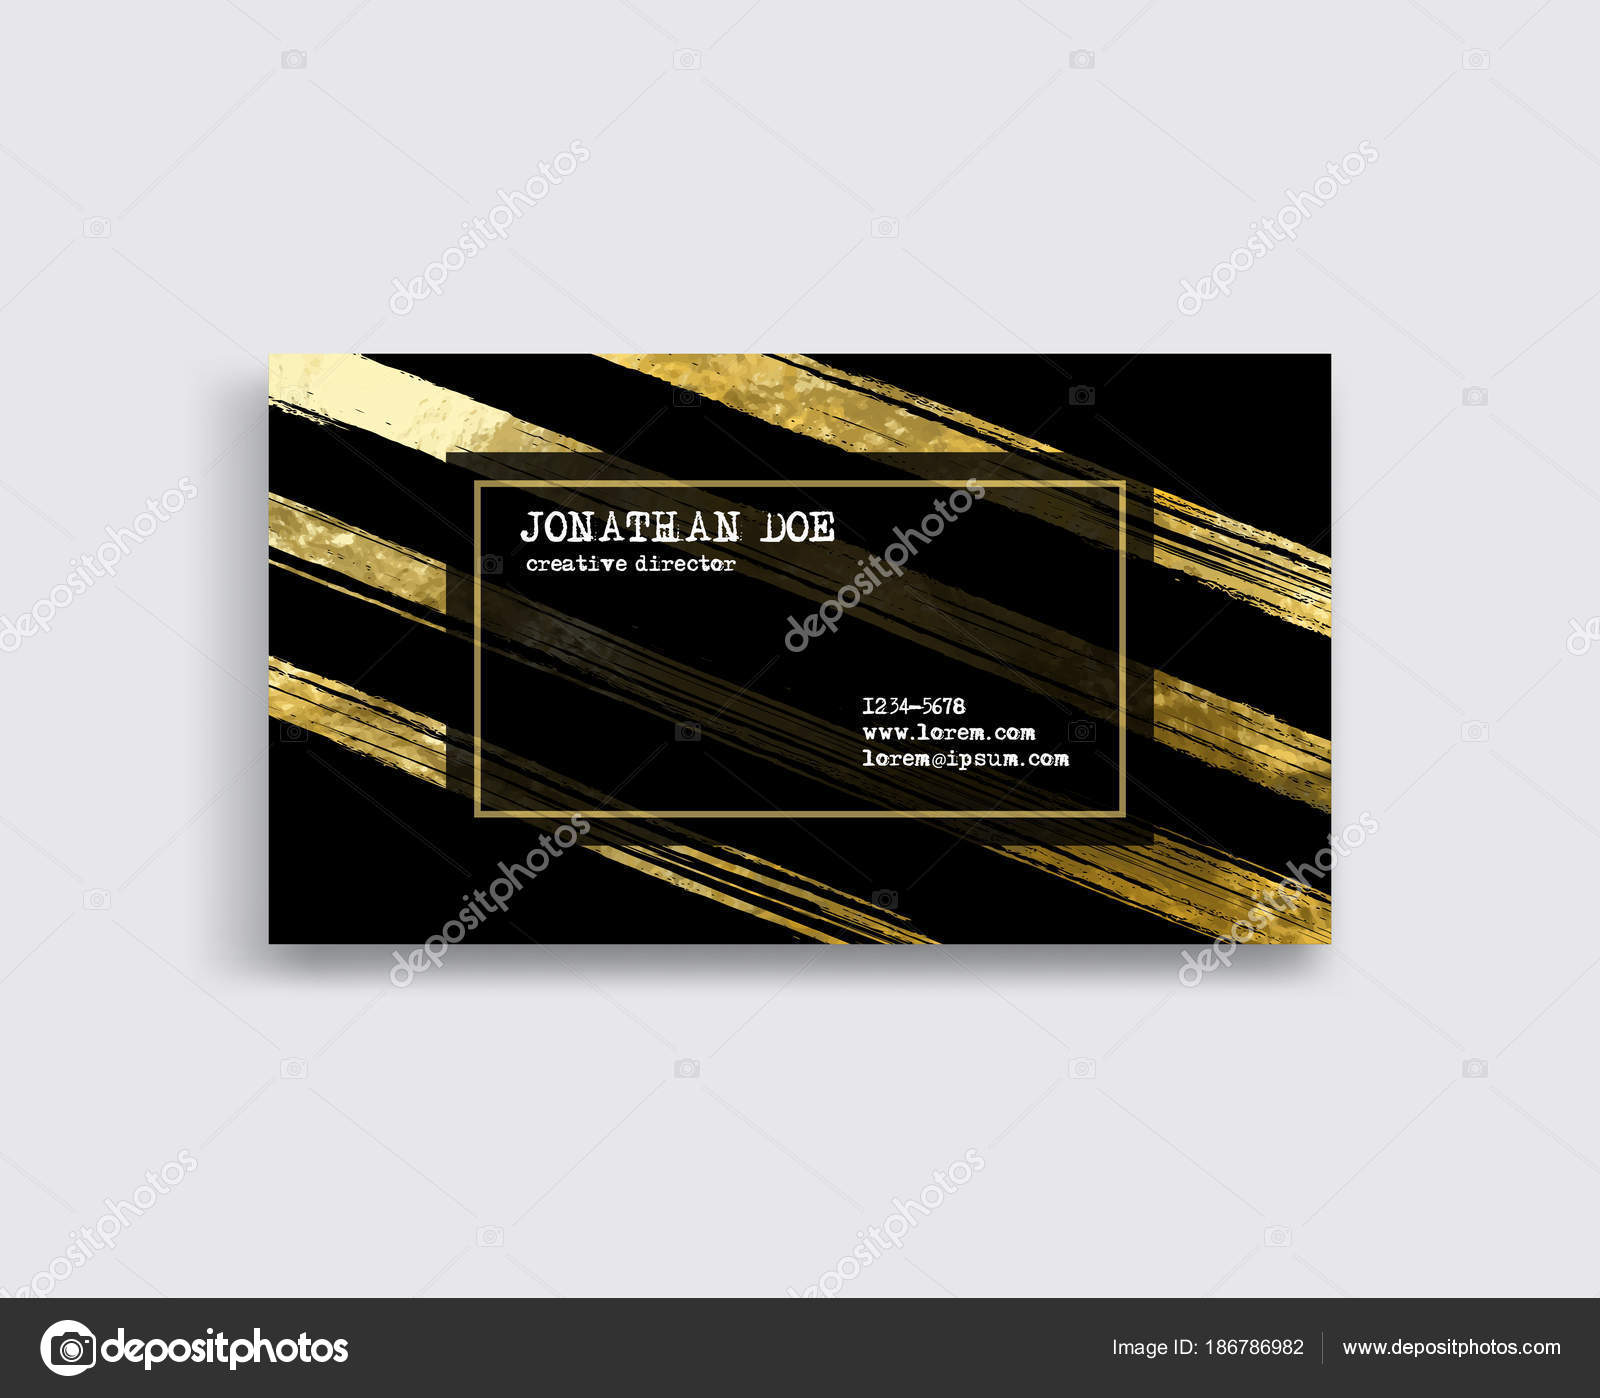 Black and gold business card template stock vector sdmixx black and gold business card template vector illustration vector by sdmixx reheart Choice Image